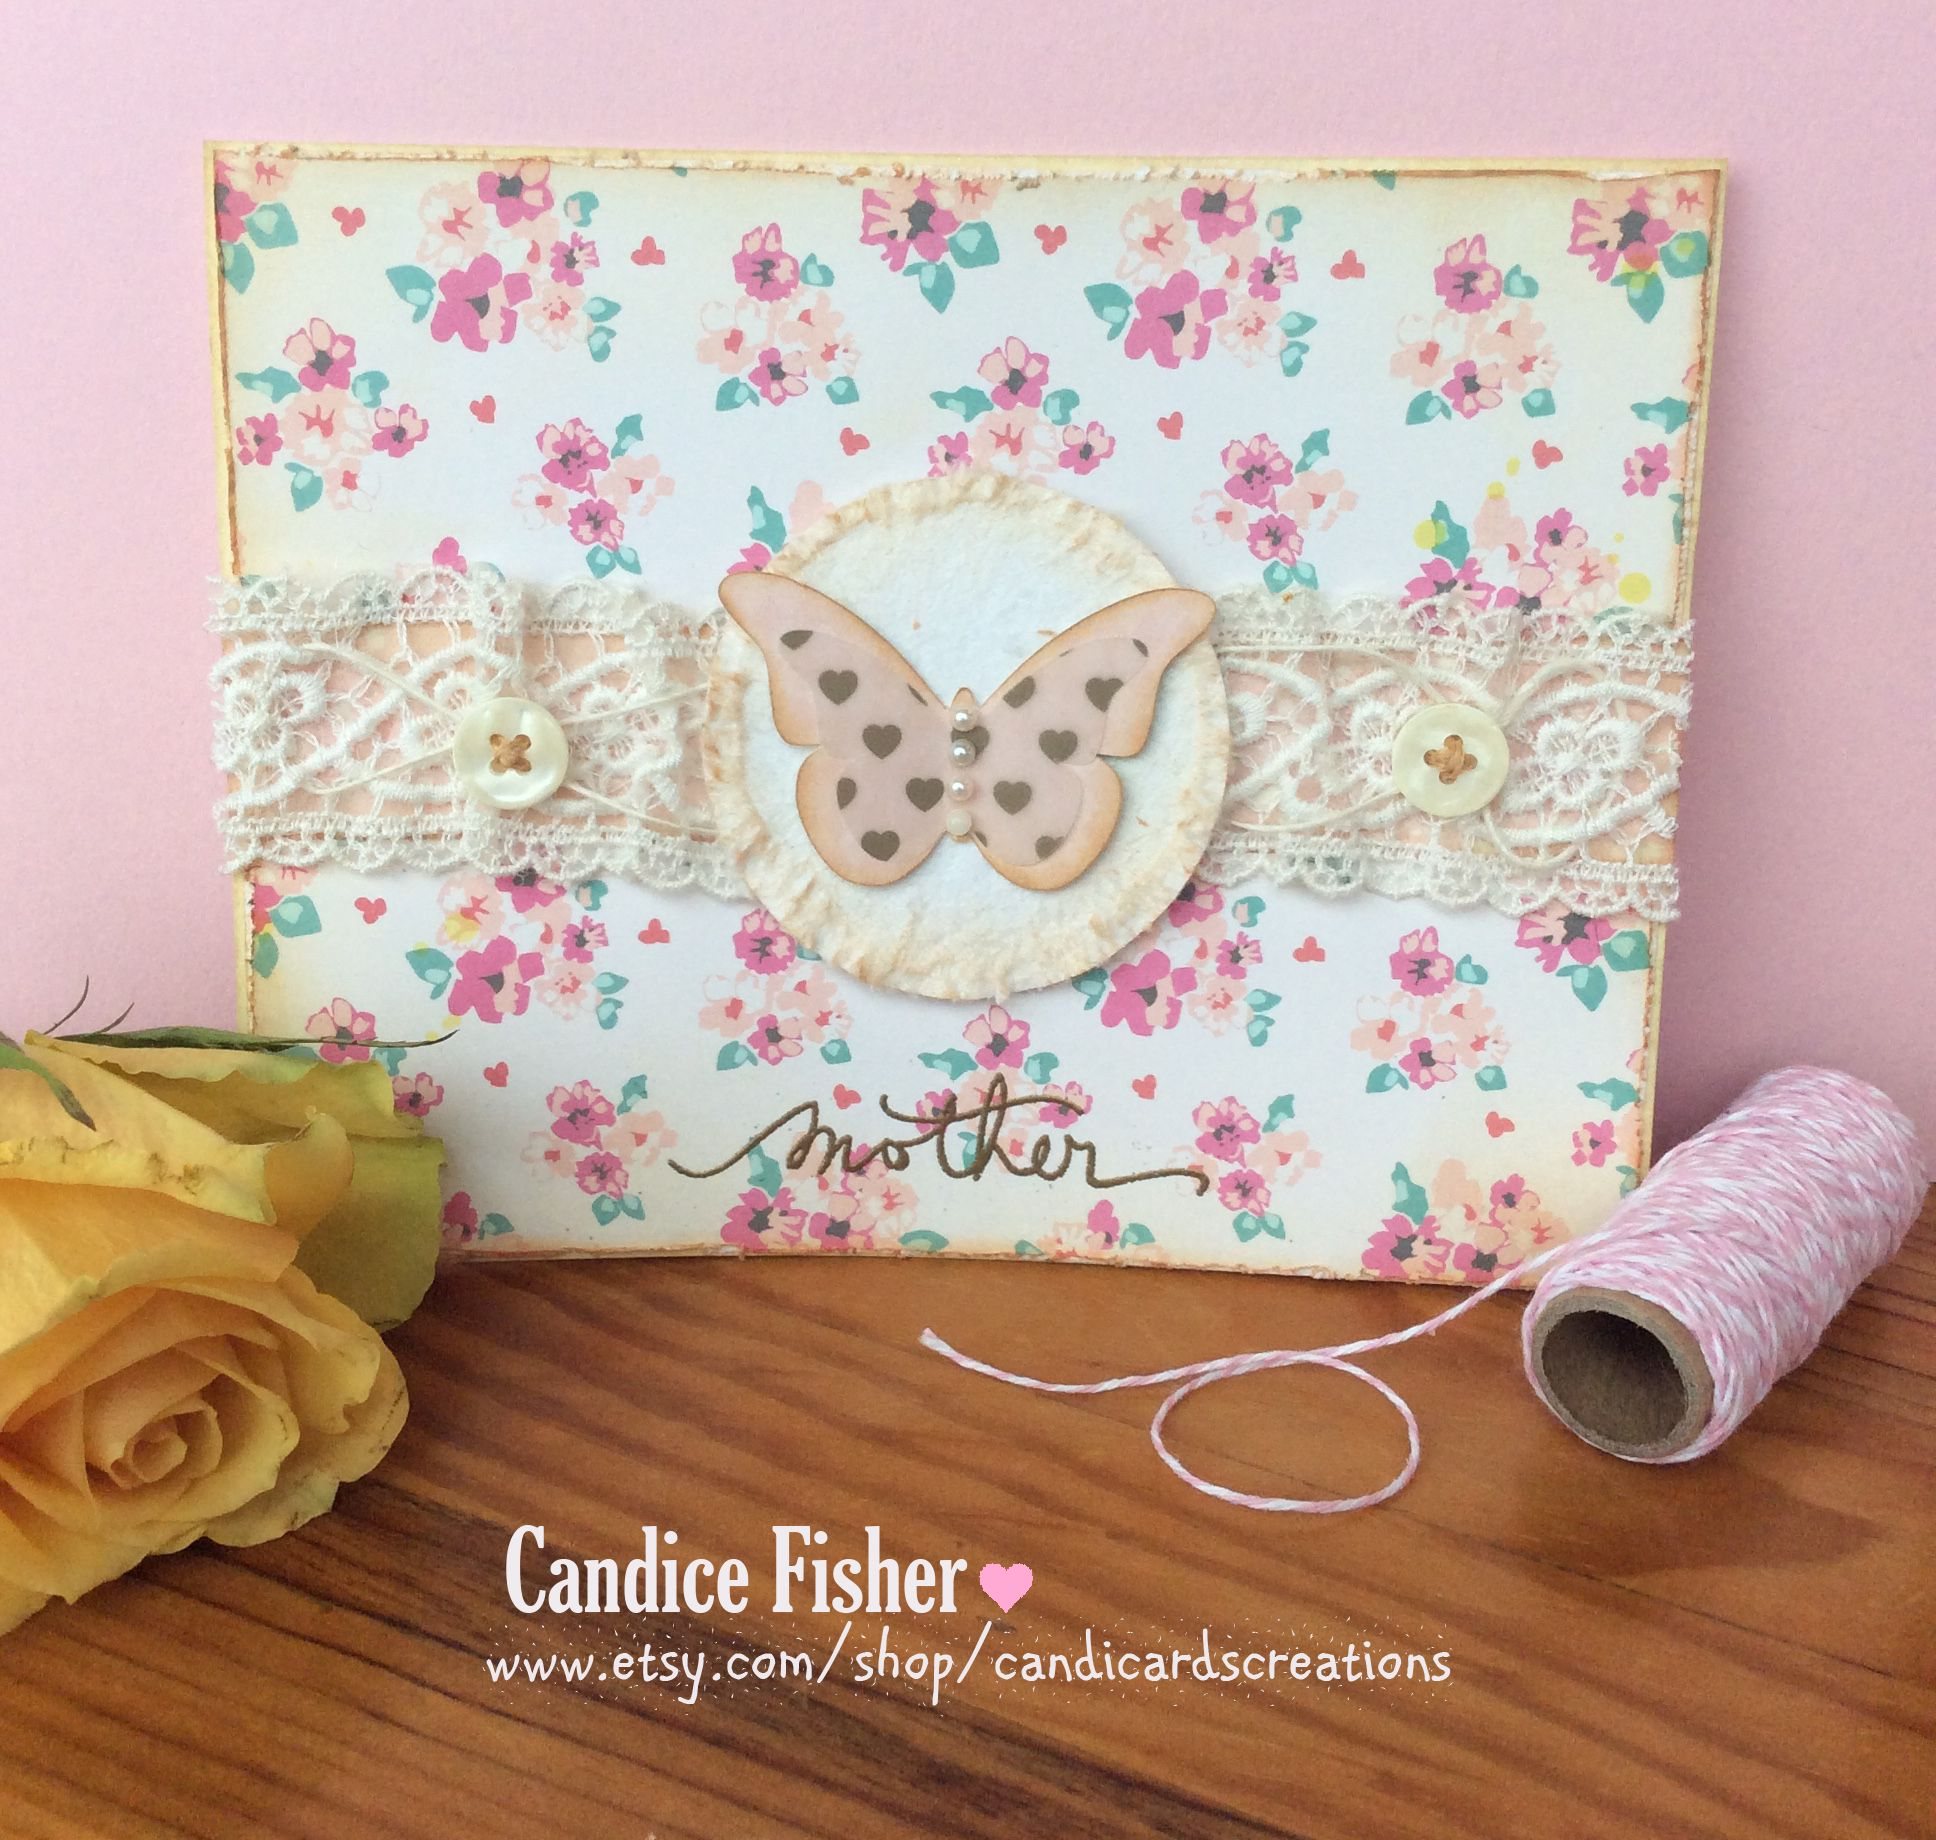 a very delicate mother's day card with beautiful lace and